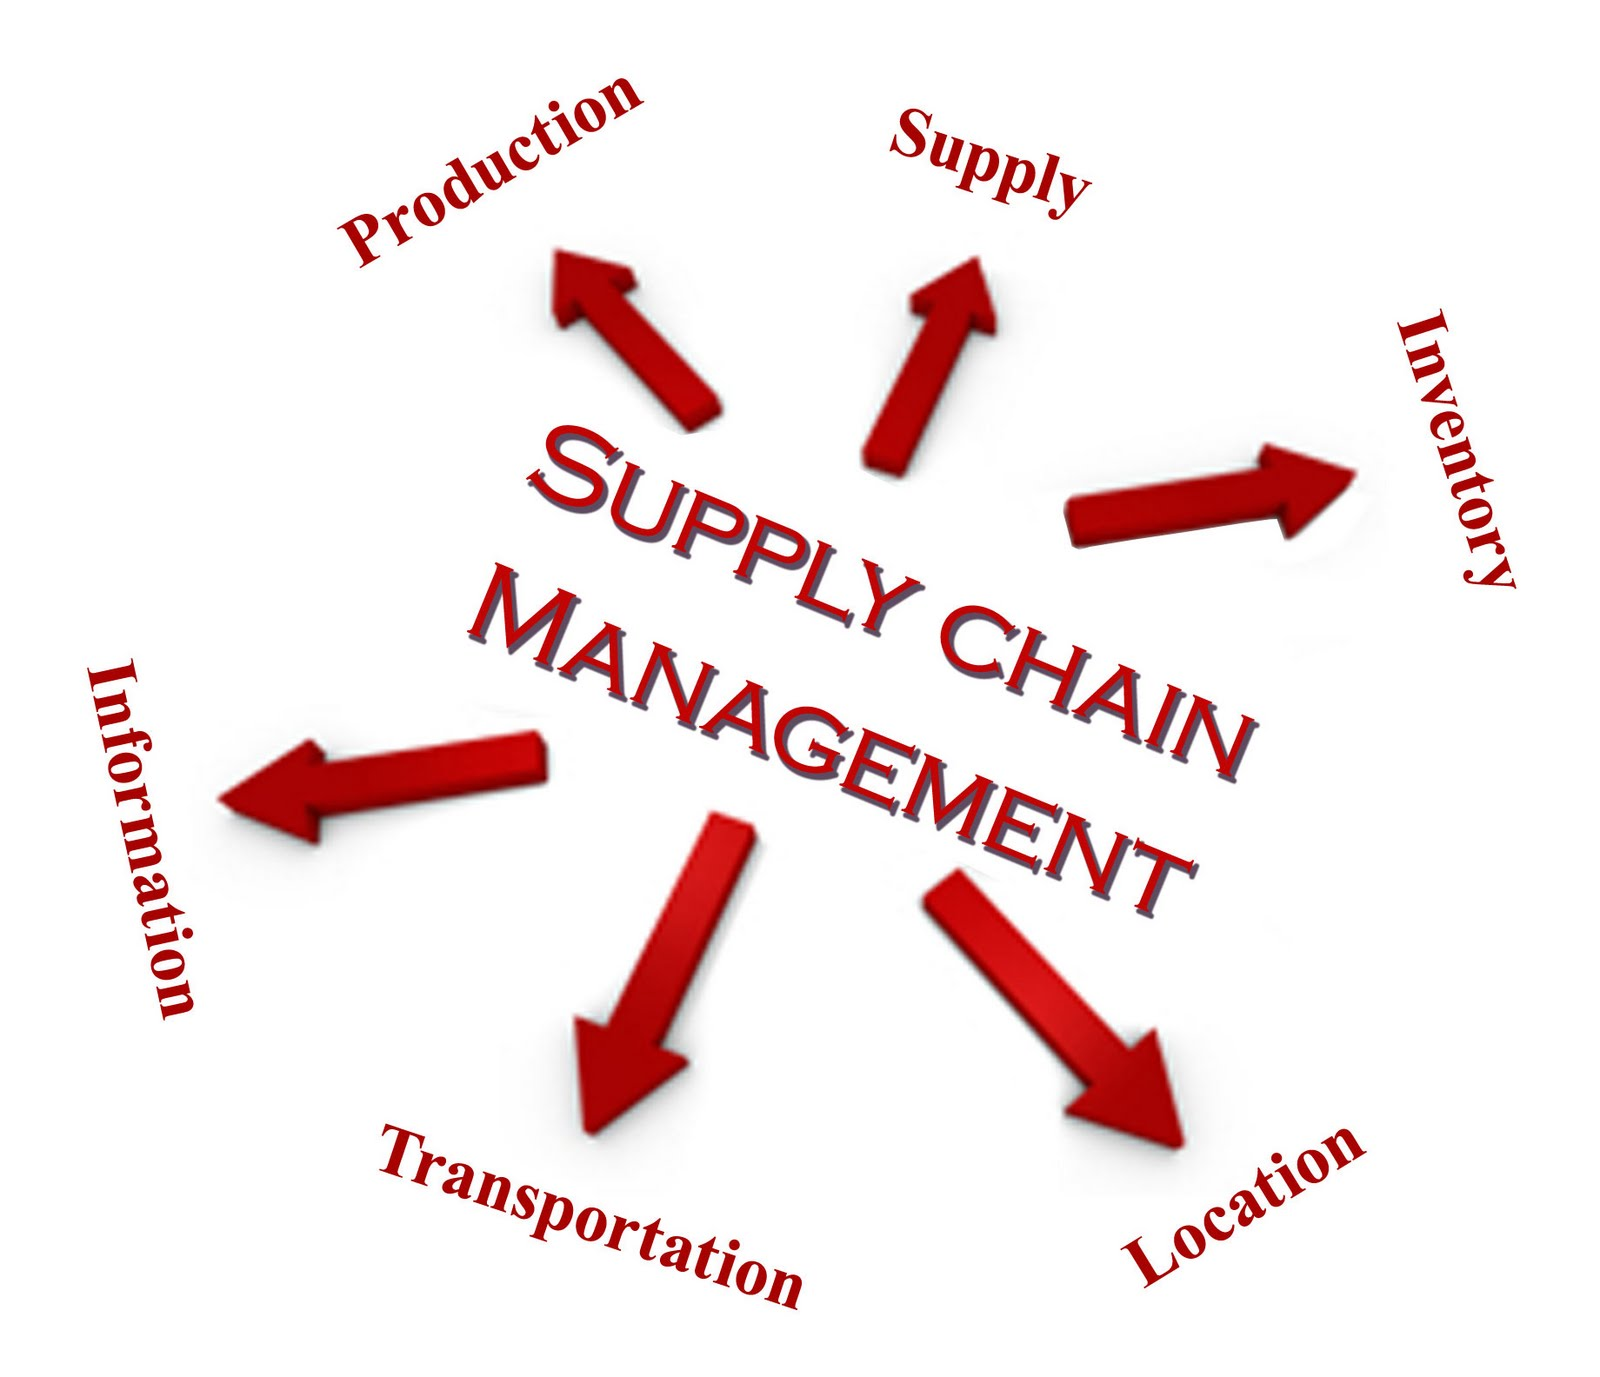 Dissertation supply chain management